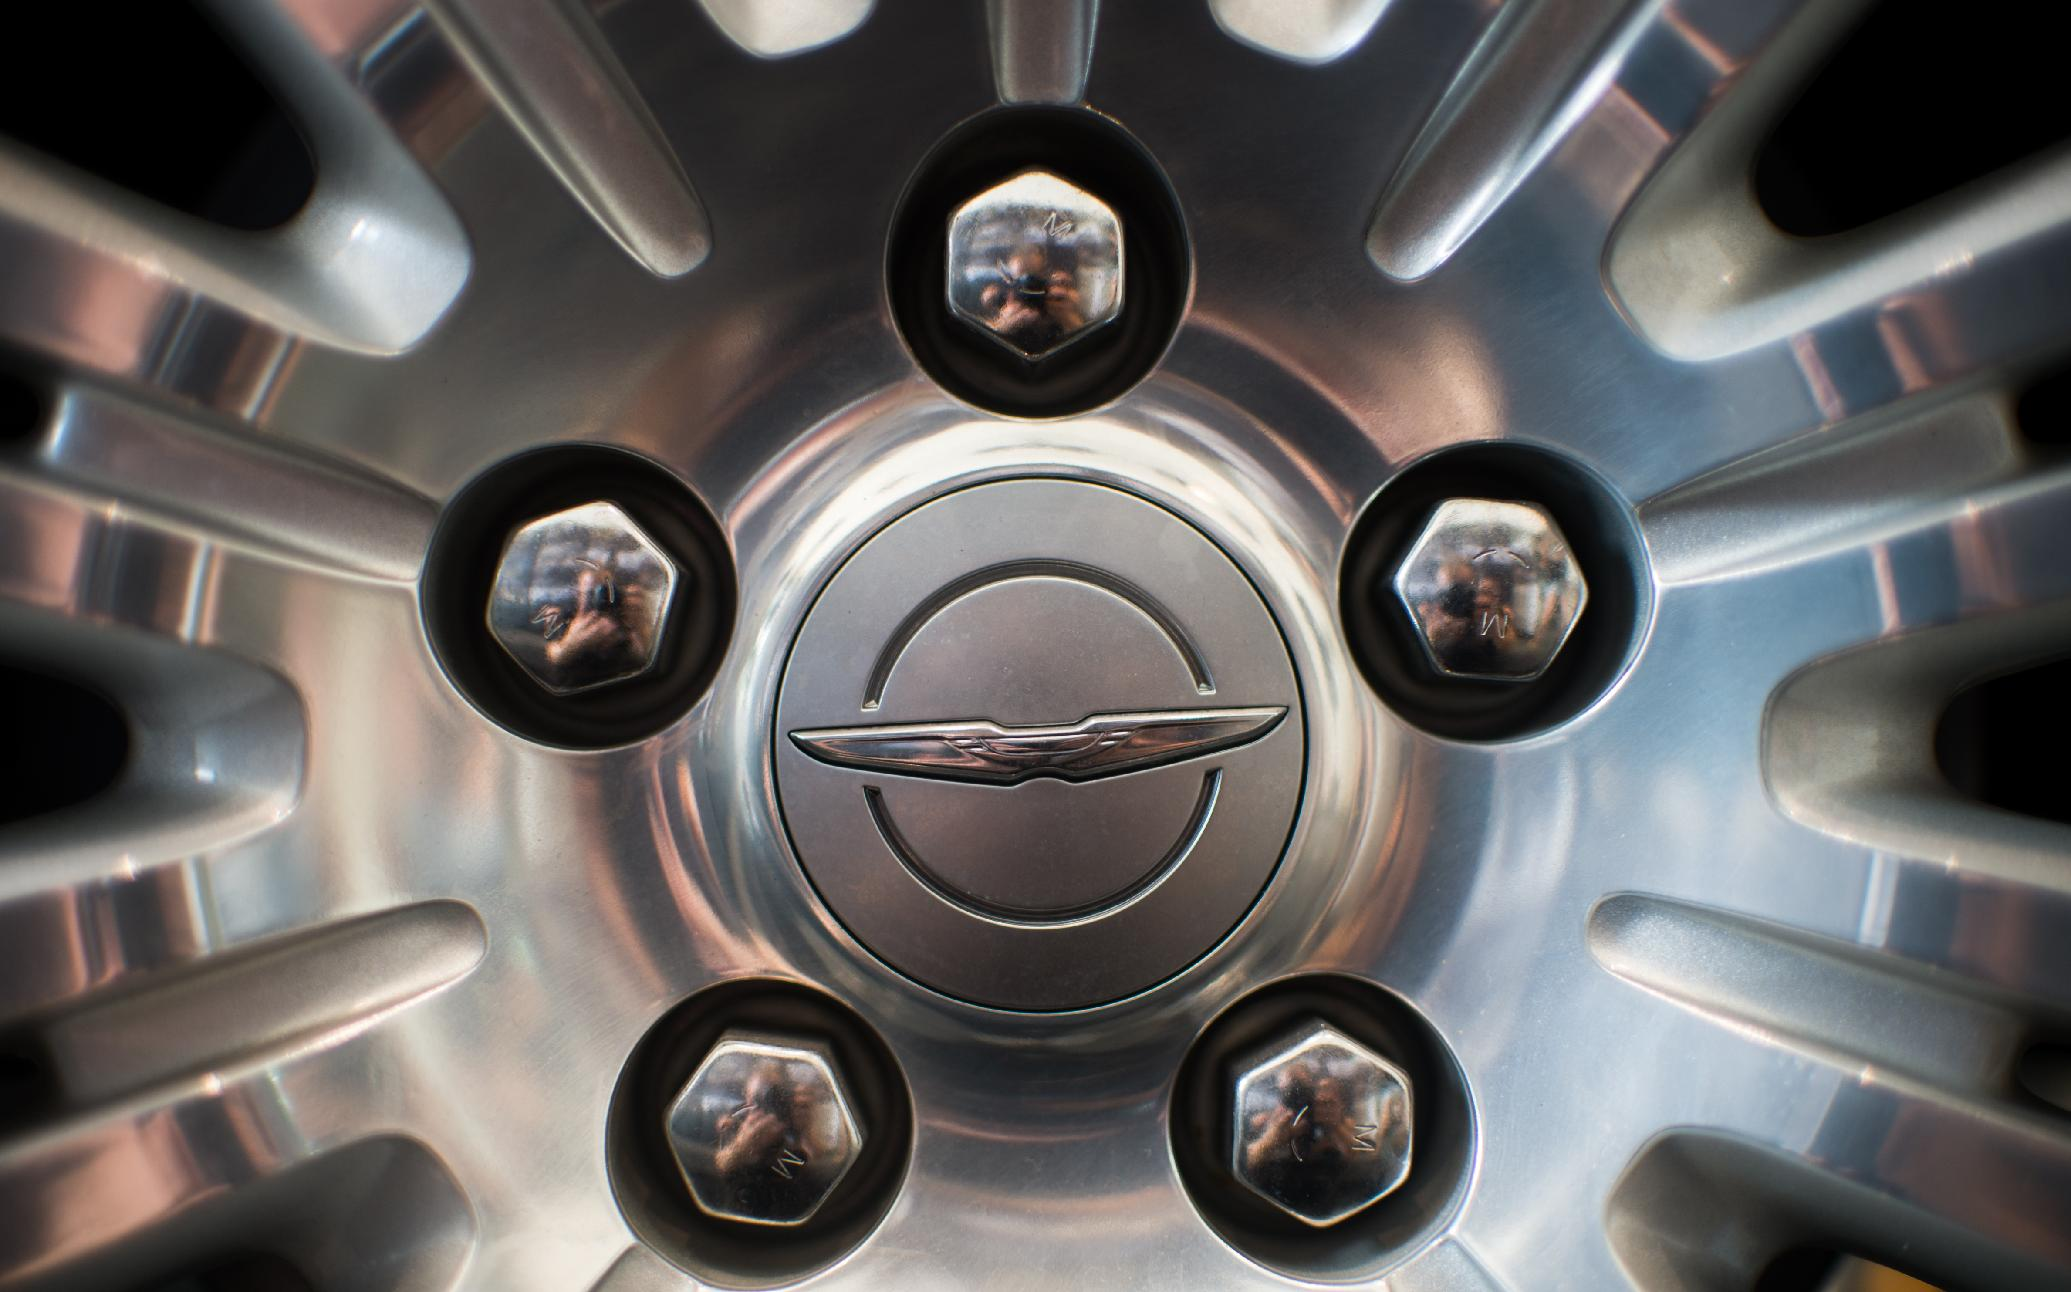 A Chrysler logo is pictured on a wheel of a car at a repair centre in Shanghai, on August 6, 2014